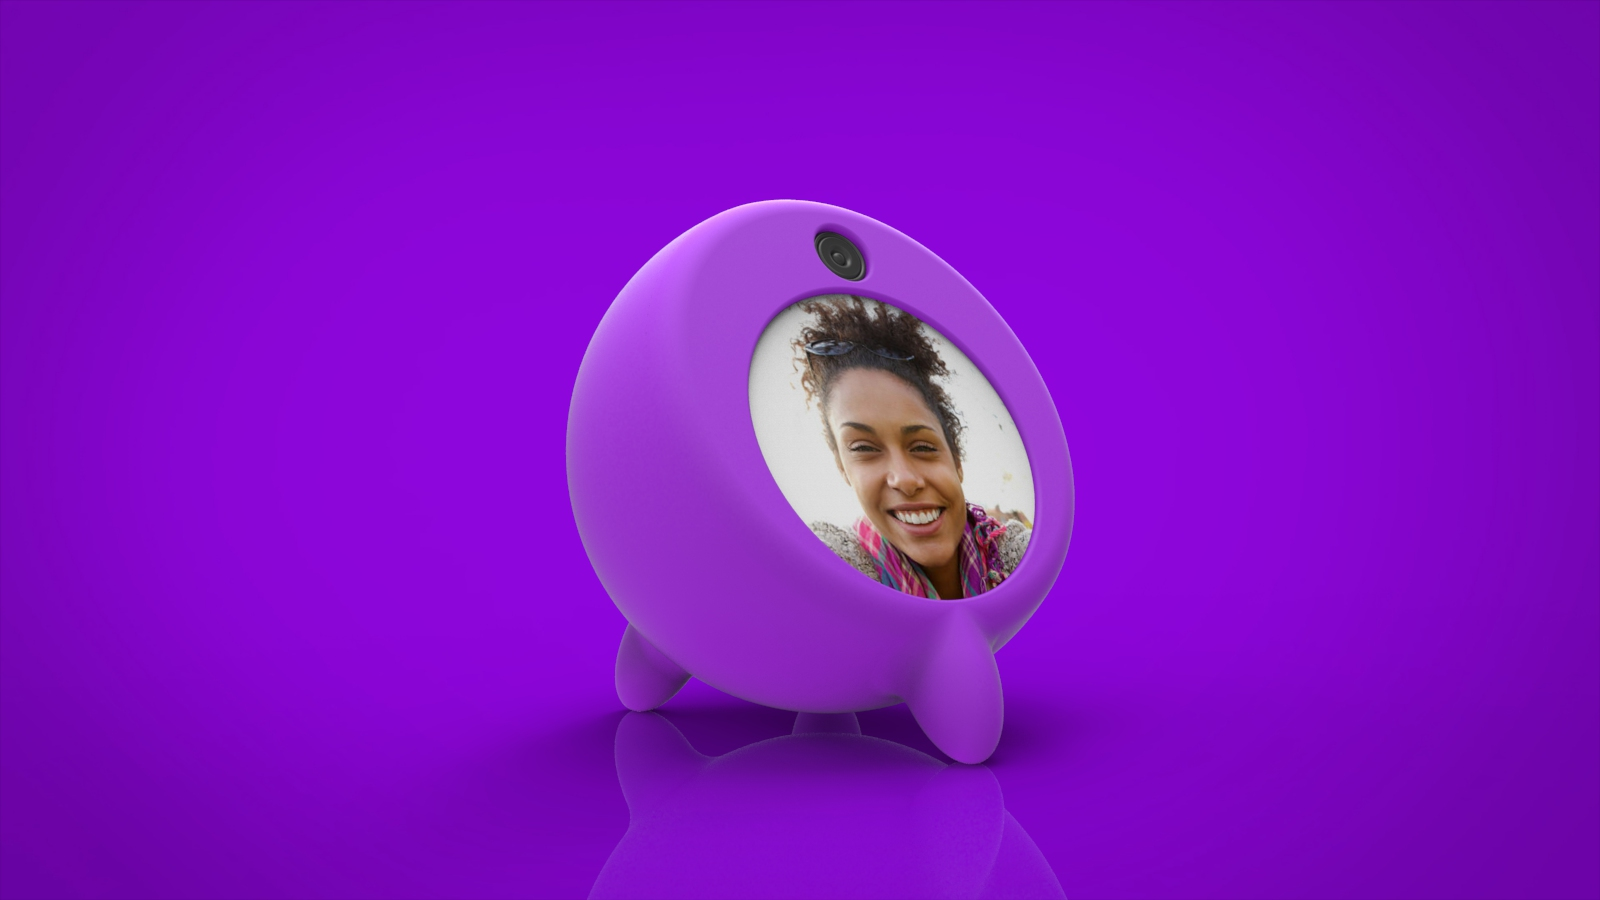 Cardboard Helicopter Product Design Cleveland Ohio Product Development Industrial Design - Digital Video Chat Face Ball.jpg